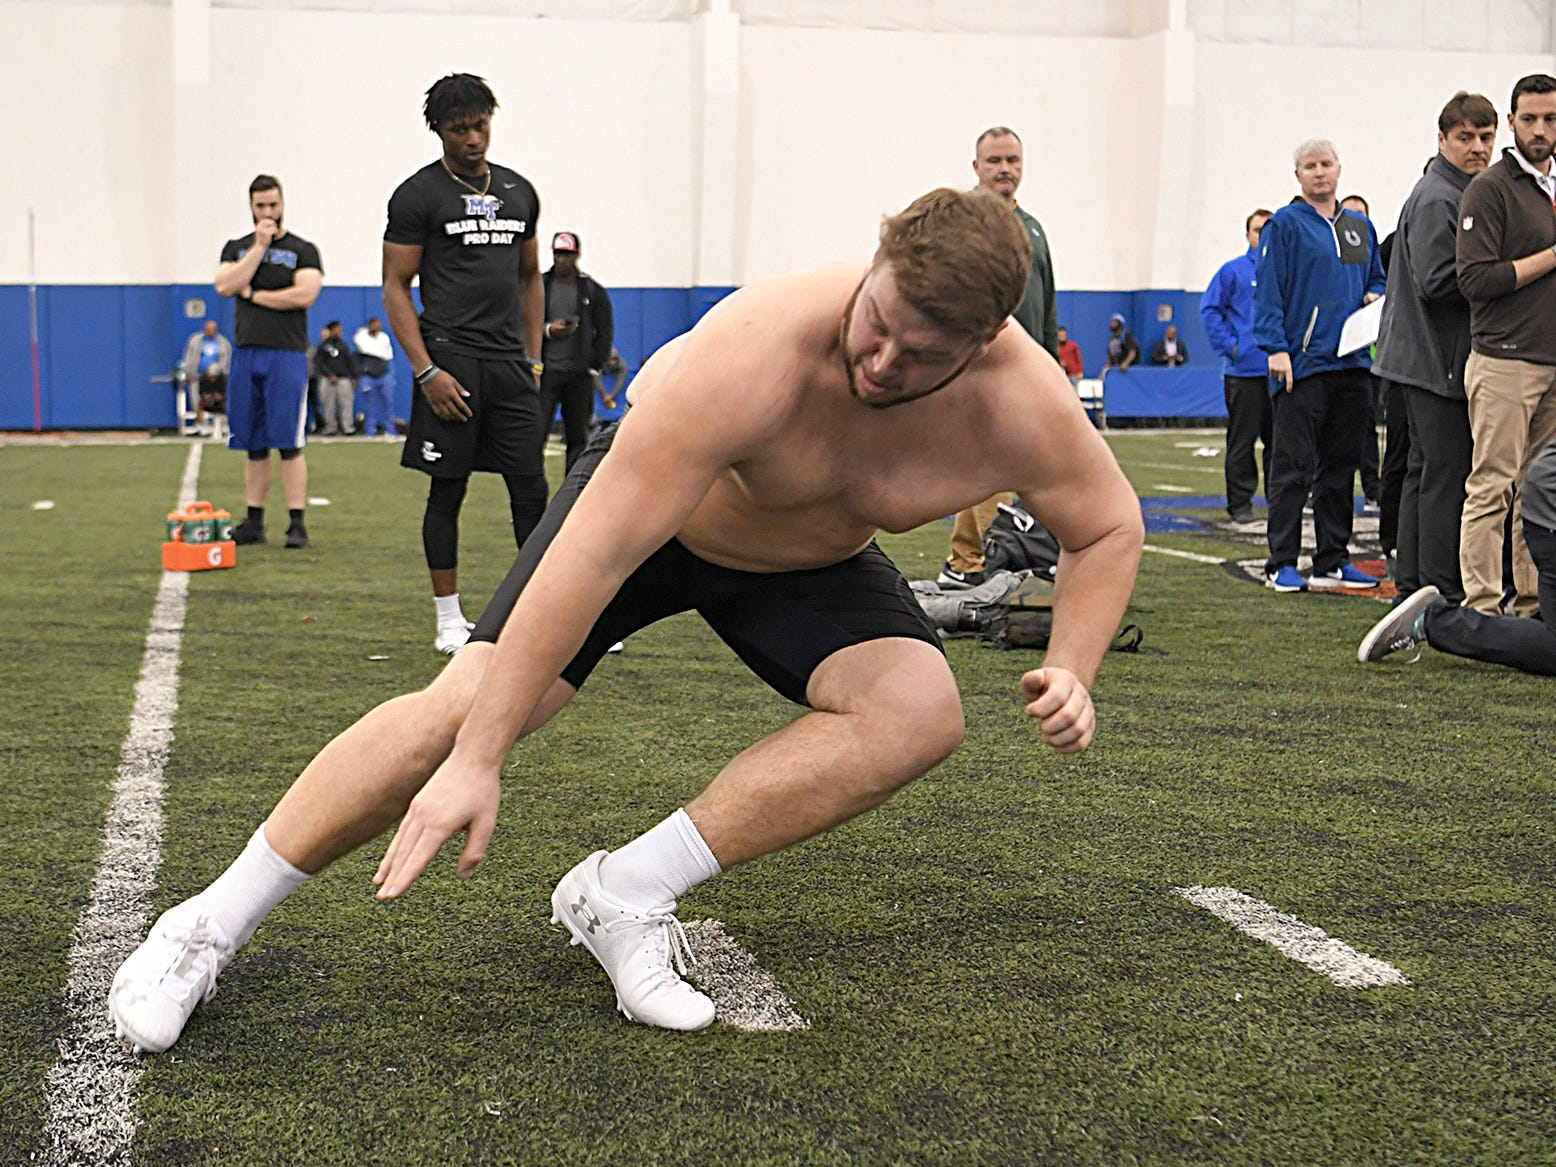 MTSU's Chandler Brewer runs drills during NFL Pro Day which was held at TSU in Nashville on Monday, March 11, 2019.